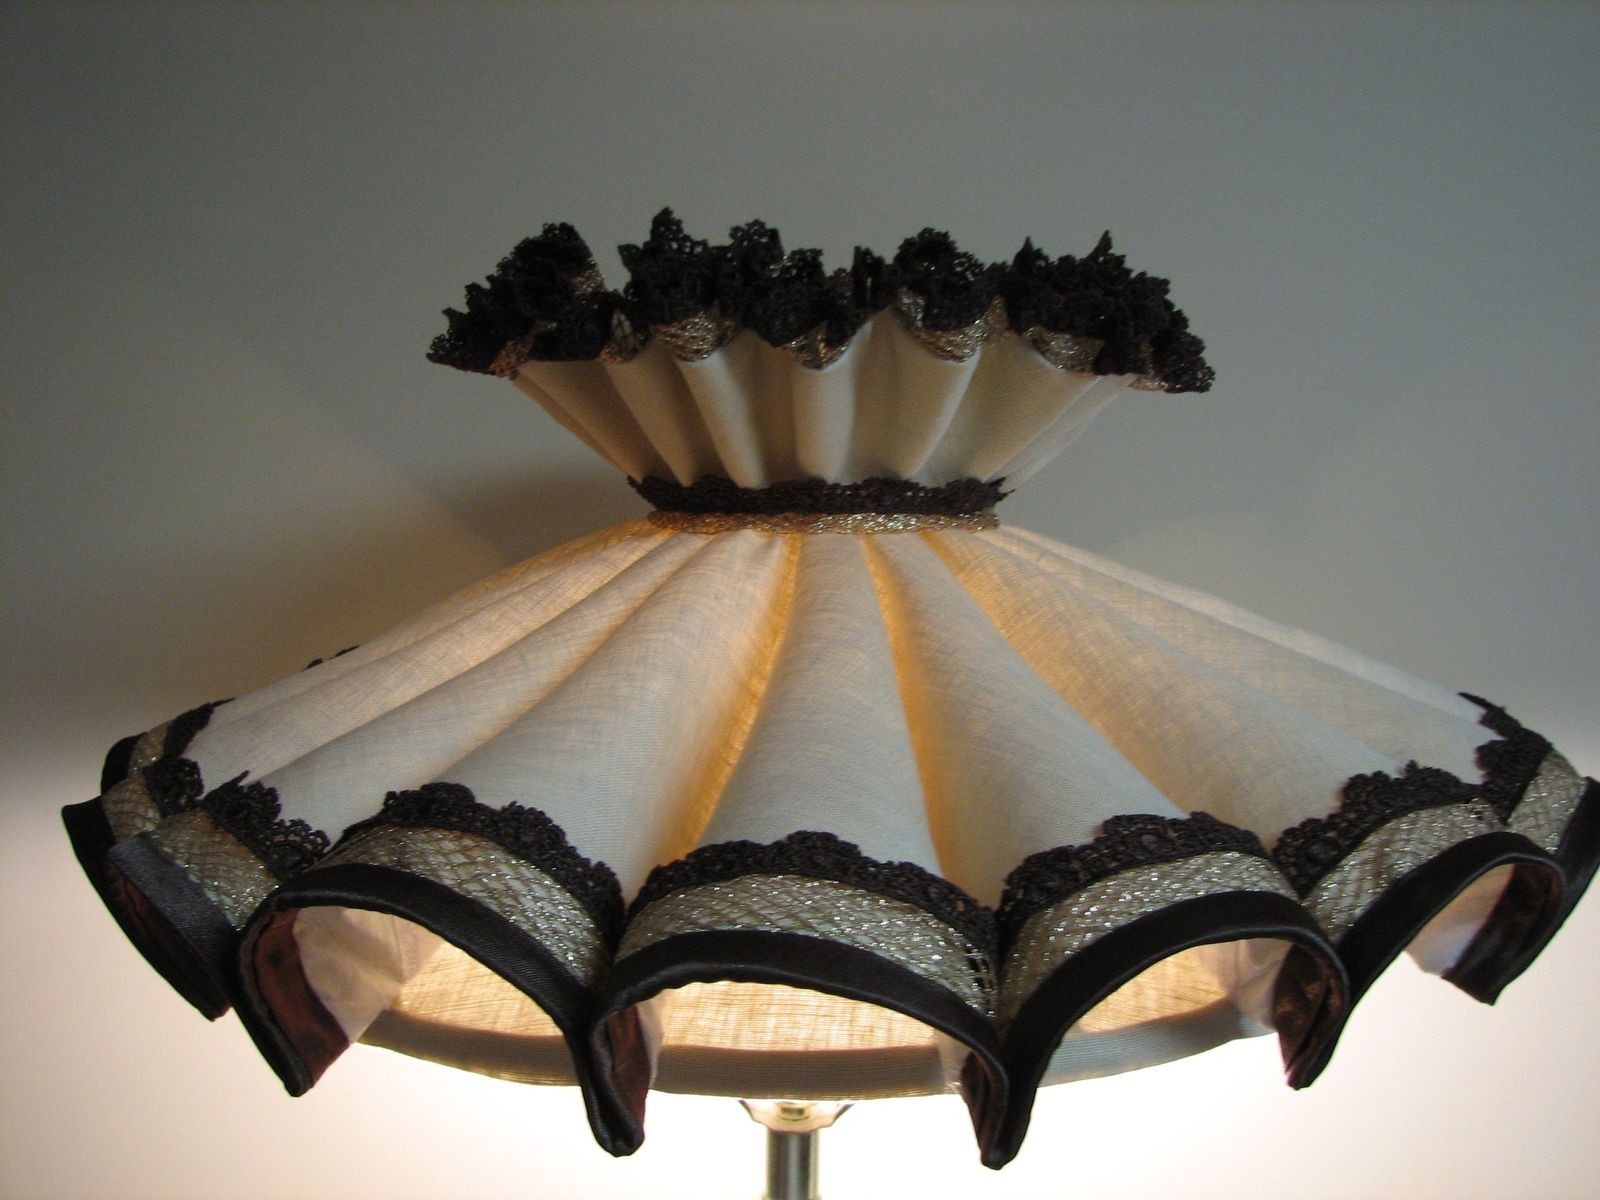 Custom early american lampshade recover by suzanne michelle custom made early american lampshade recover aloadofball Gallery